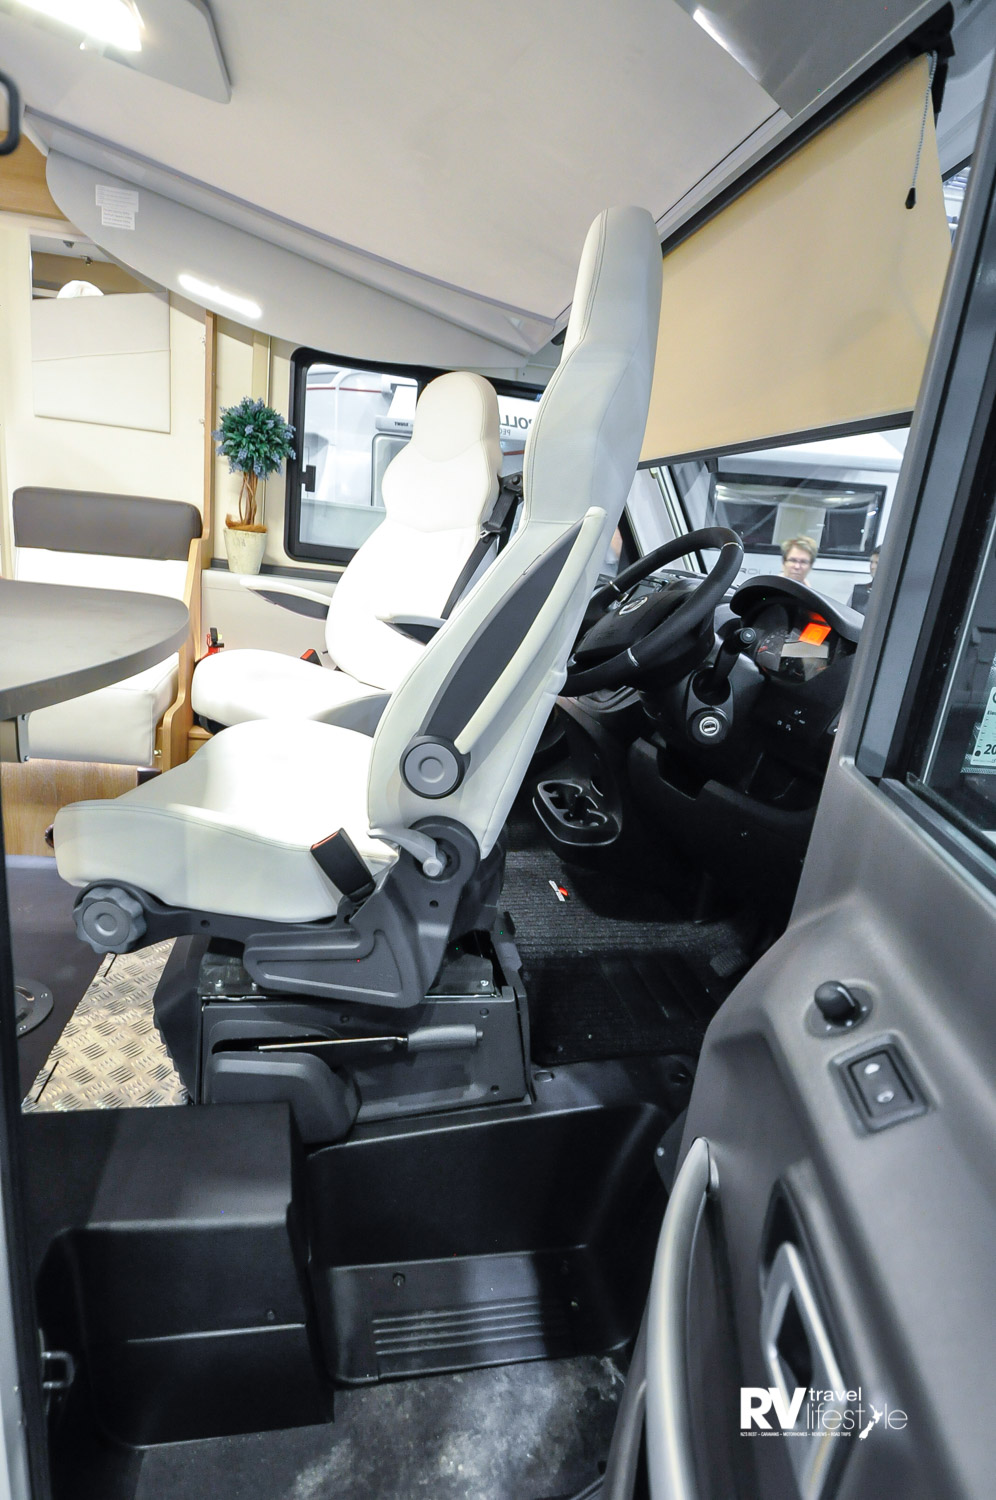 The front cab entry is easy with large entry doors, and the swivel of the Captain chairs doubles as a living area extension. Ceiling bed above very discrete. Front cab blinds close the area off for privacy